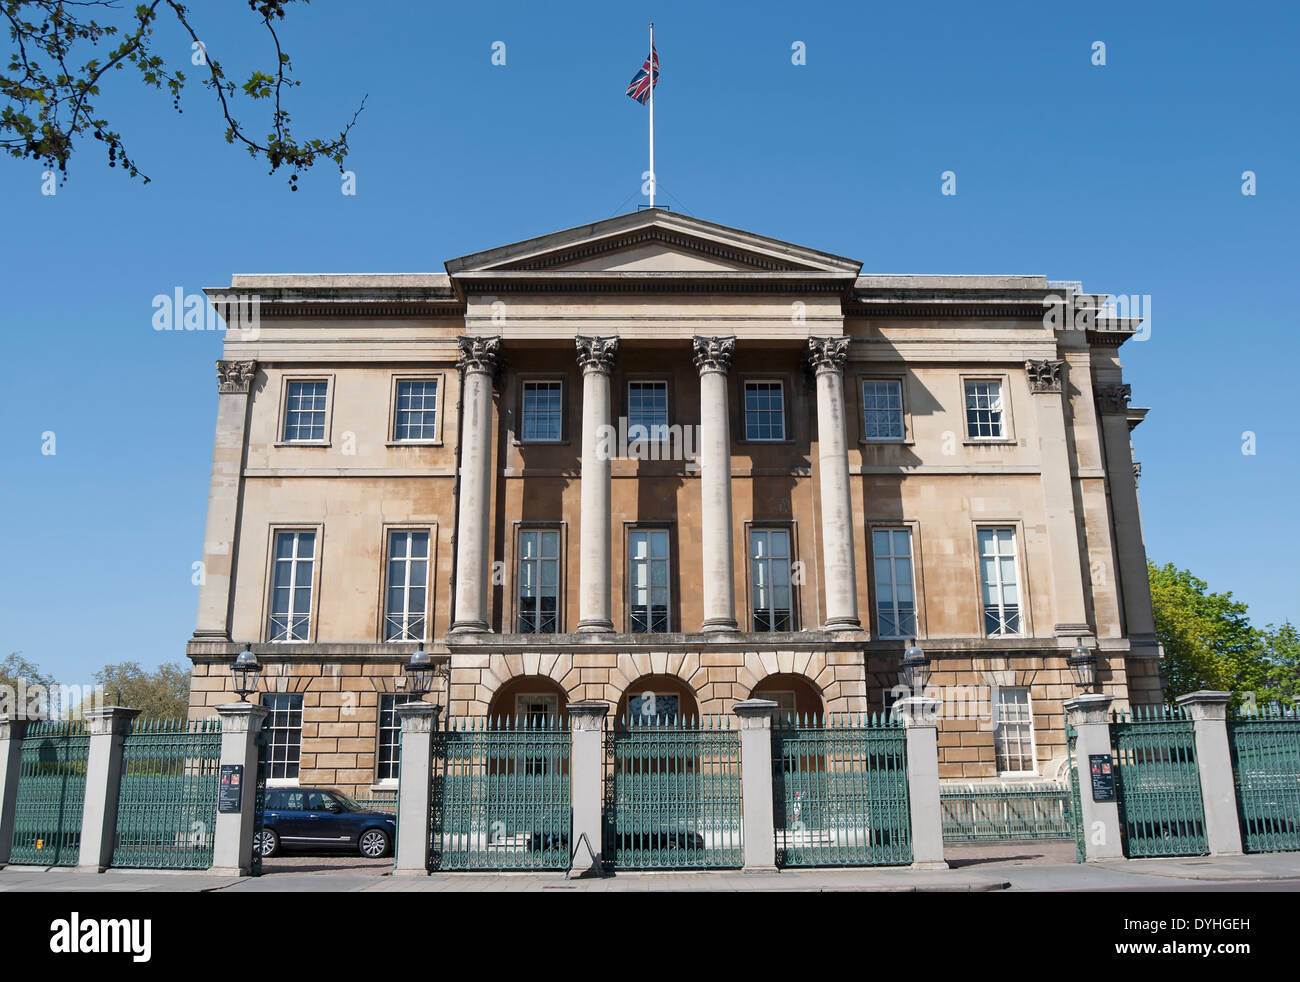 apsley house, home of the duke of wellington and now a museum, hyde park corner, london, england - Stock Image